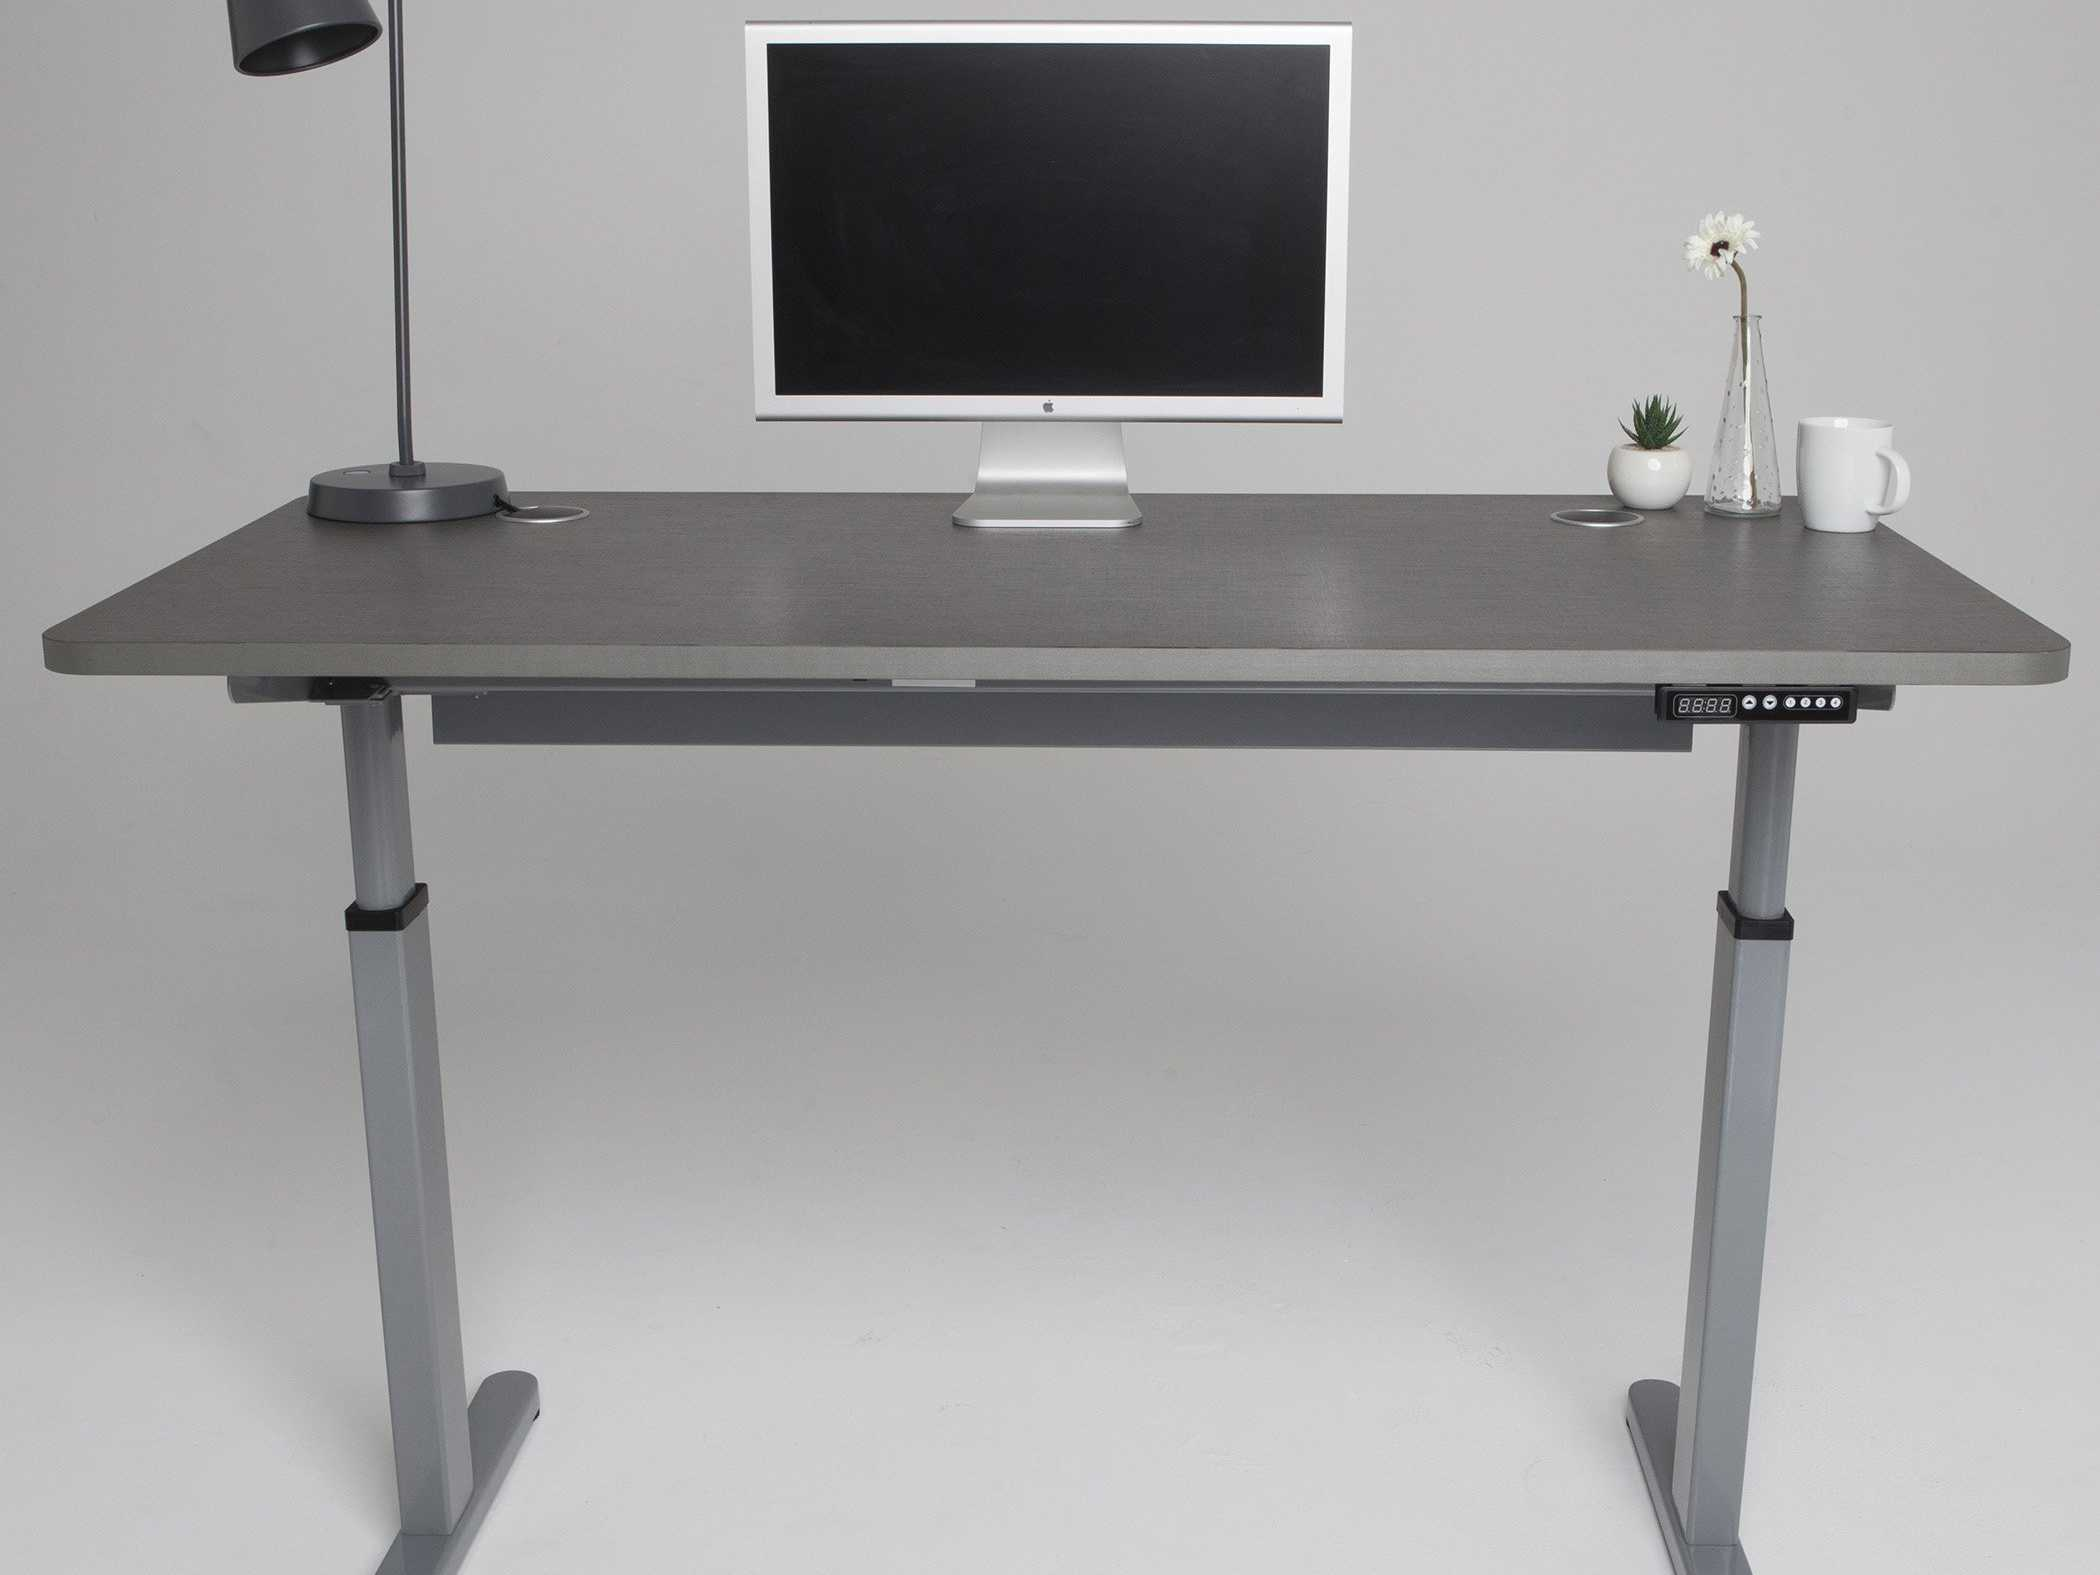 How to make a standing desk homesfeed for Standing desk at home